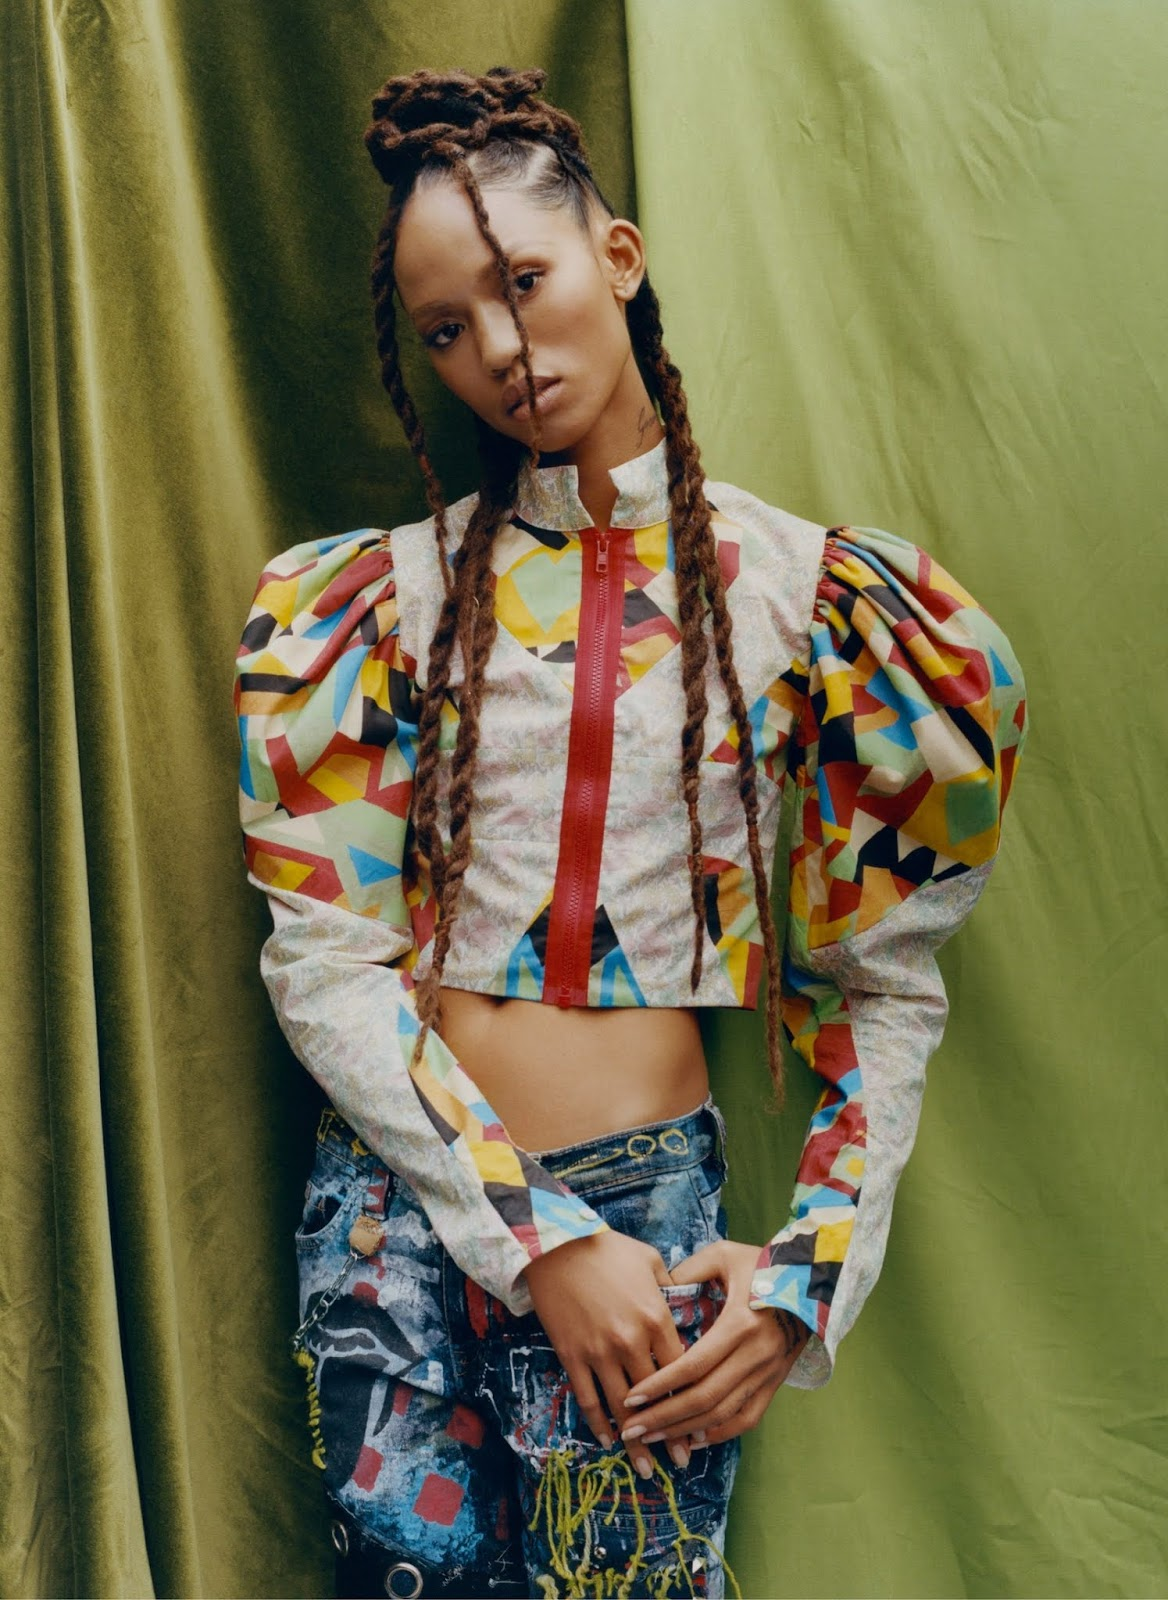 Adesuwa Aighewi poses in Matty Bovan top and Vintage jeans